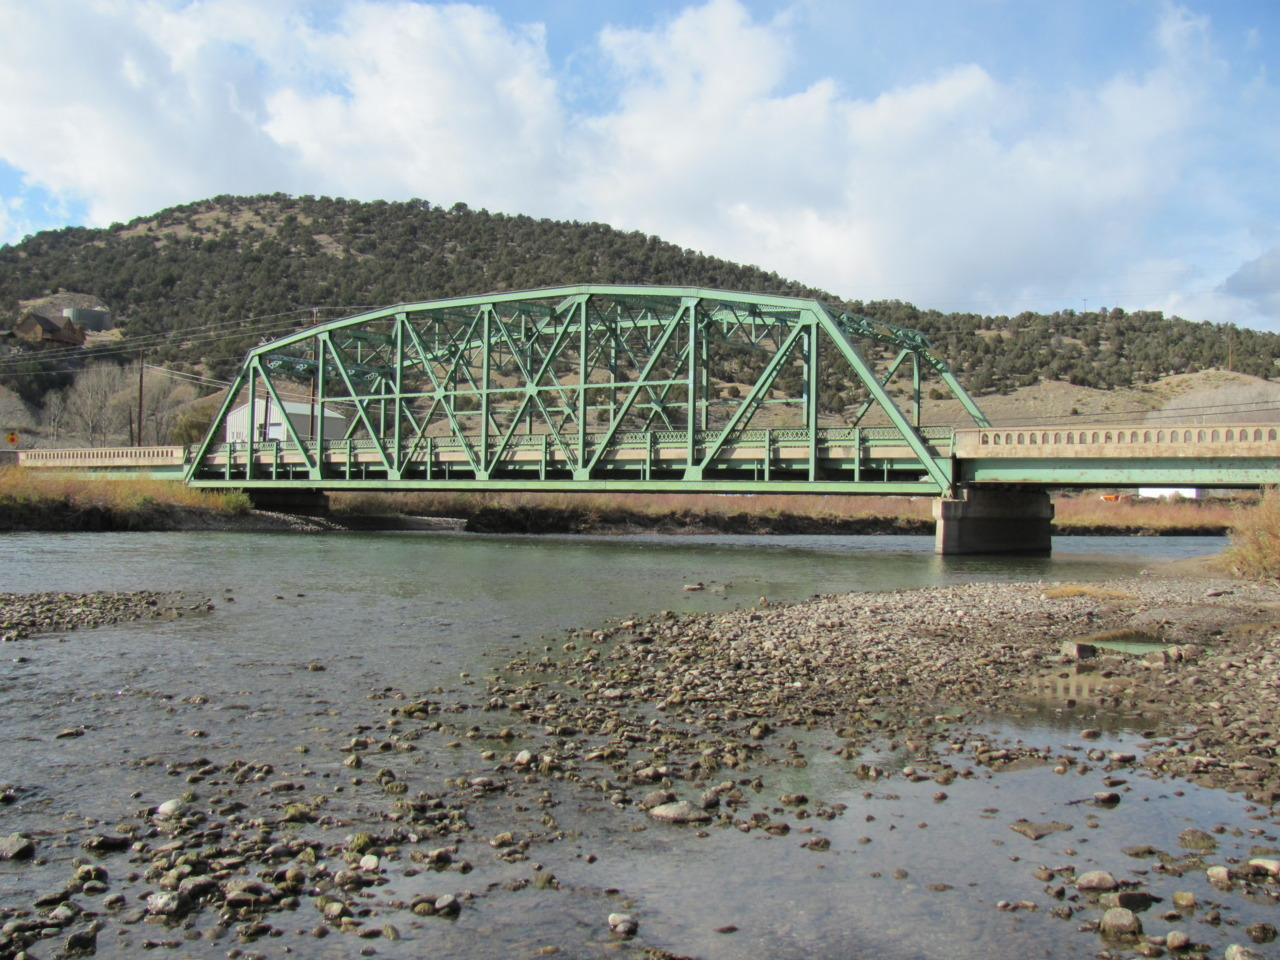 Free to good home: A bridge Wow, what a deal the Colorado Department of Transportation has for you: All that's needed is the time, money and equipment to disassemble, relocate and reassemble a 150-foot-long, 33-foot-wide, 77-year-old metal truss bridge that has vertical clearance of 13 feet, 2 inches. Click here for more on adopting the Dotsero Bridge, built in 1935.